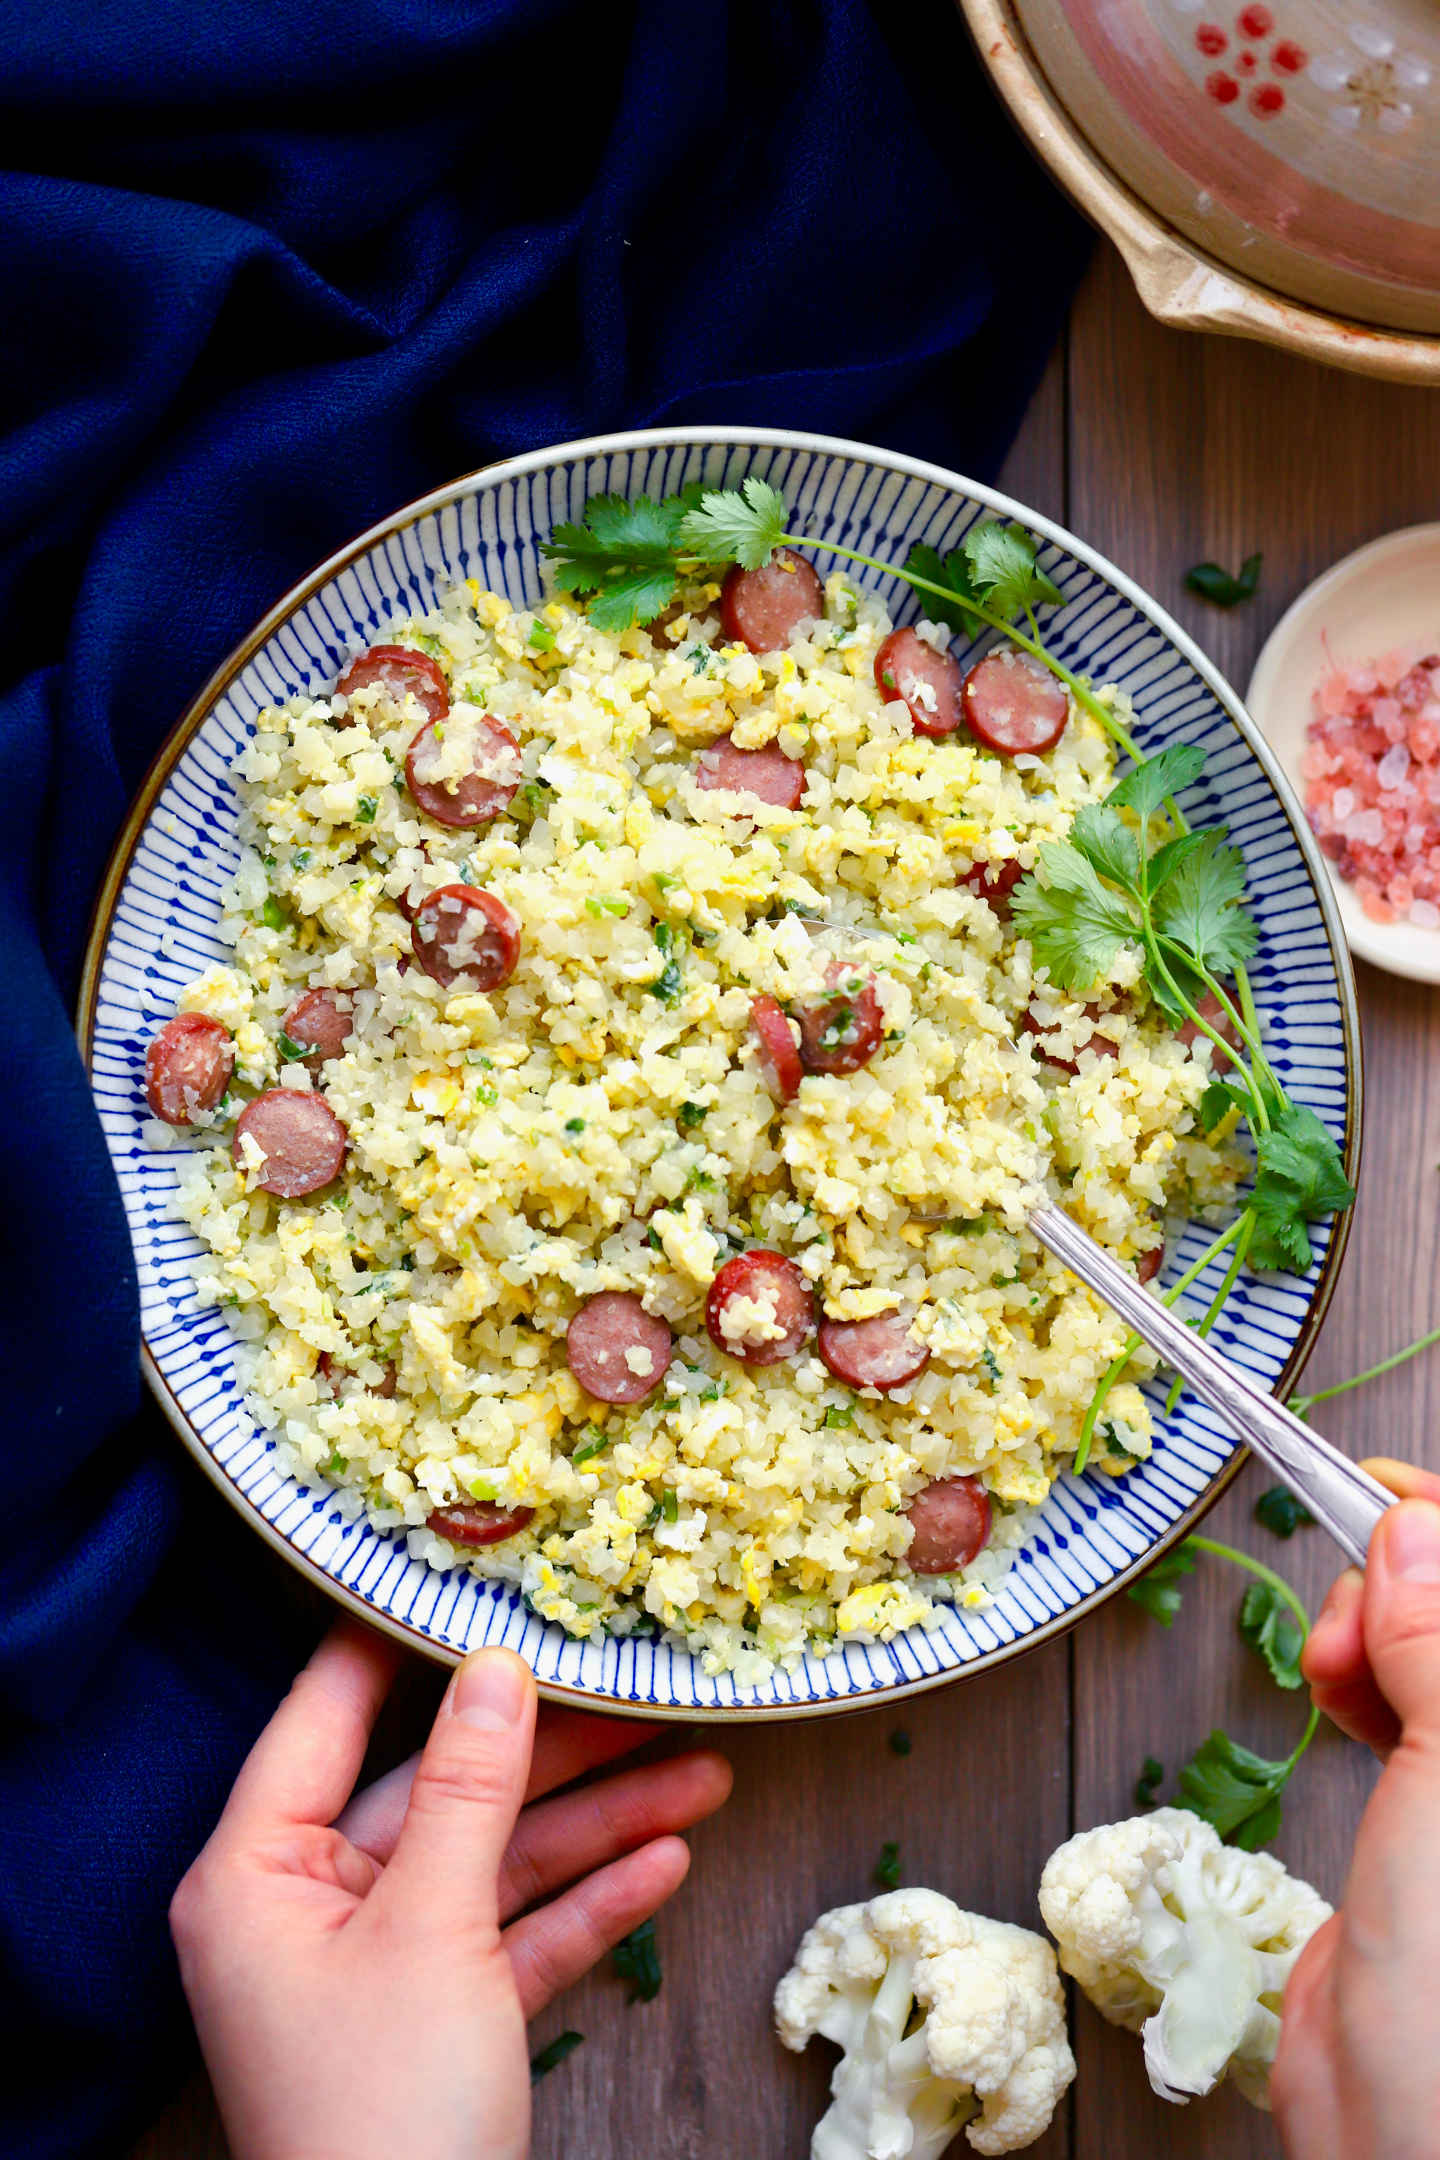 a plateful of egg and hot dog fried rice, served with a spoon